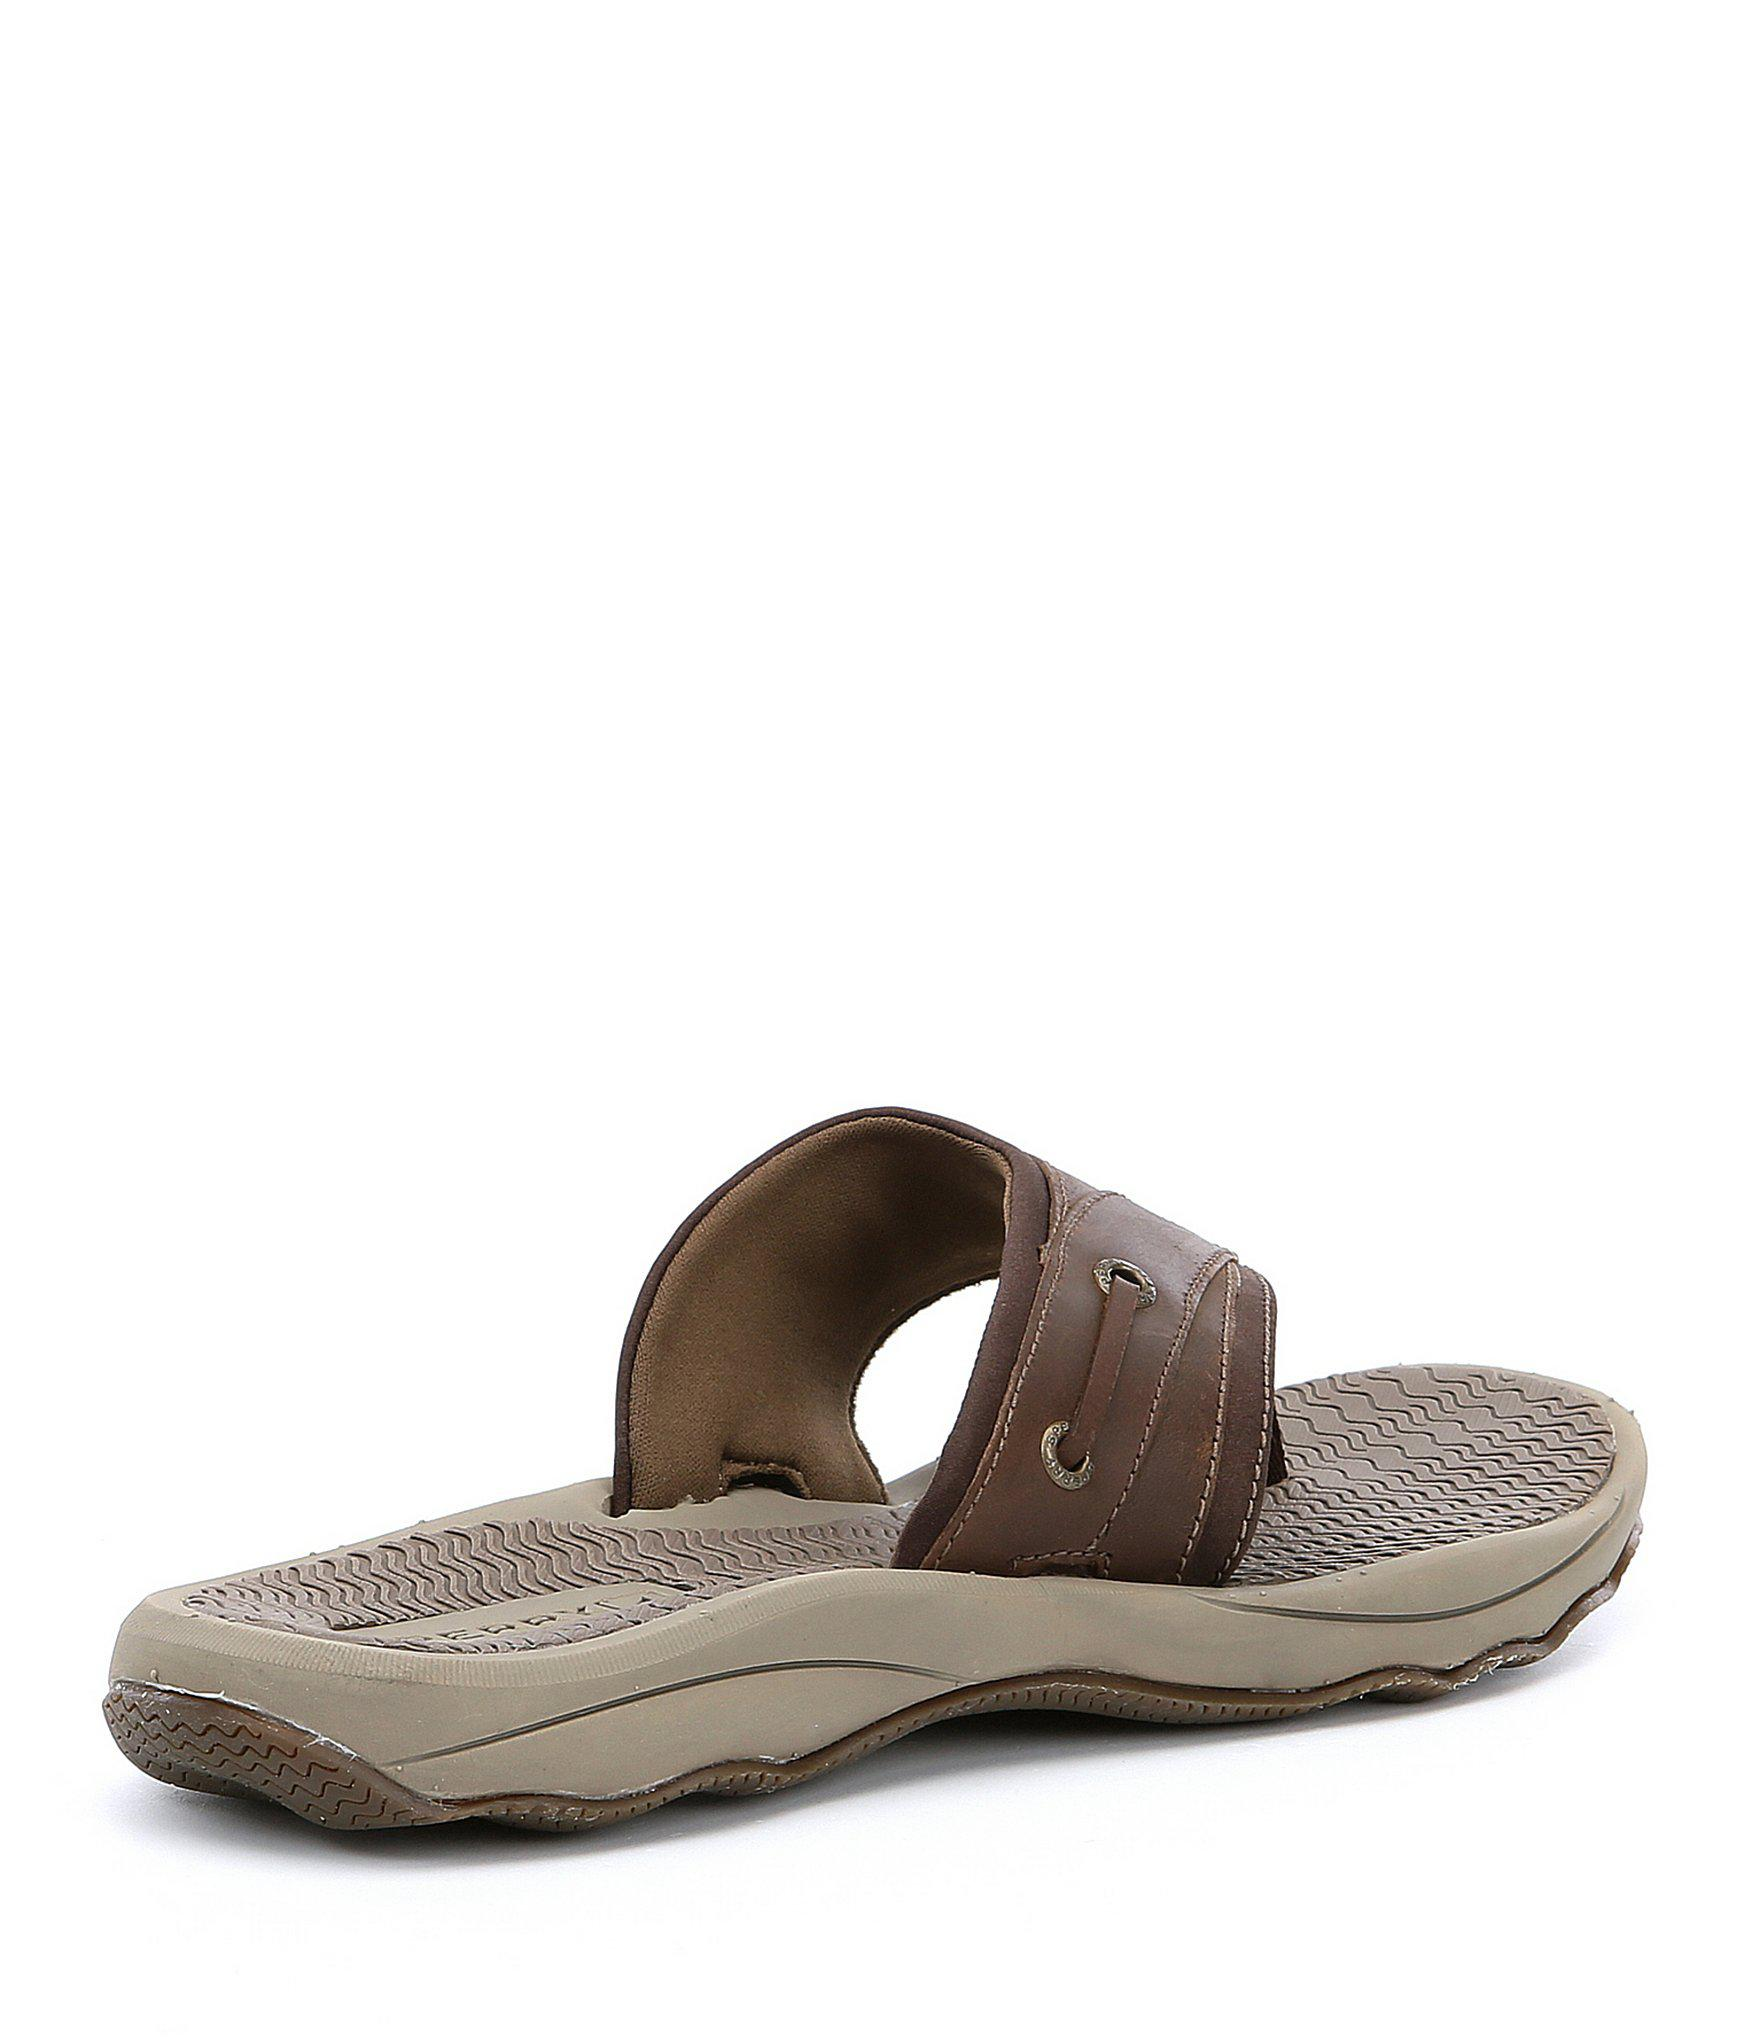 c15349f21f6 Sperry Top-Sider - Brown Outer Banks Flip-flops for Men - Lyst. View  fullscreen